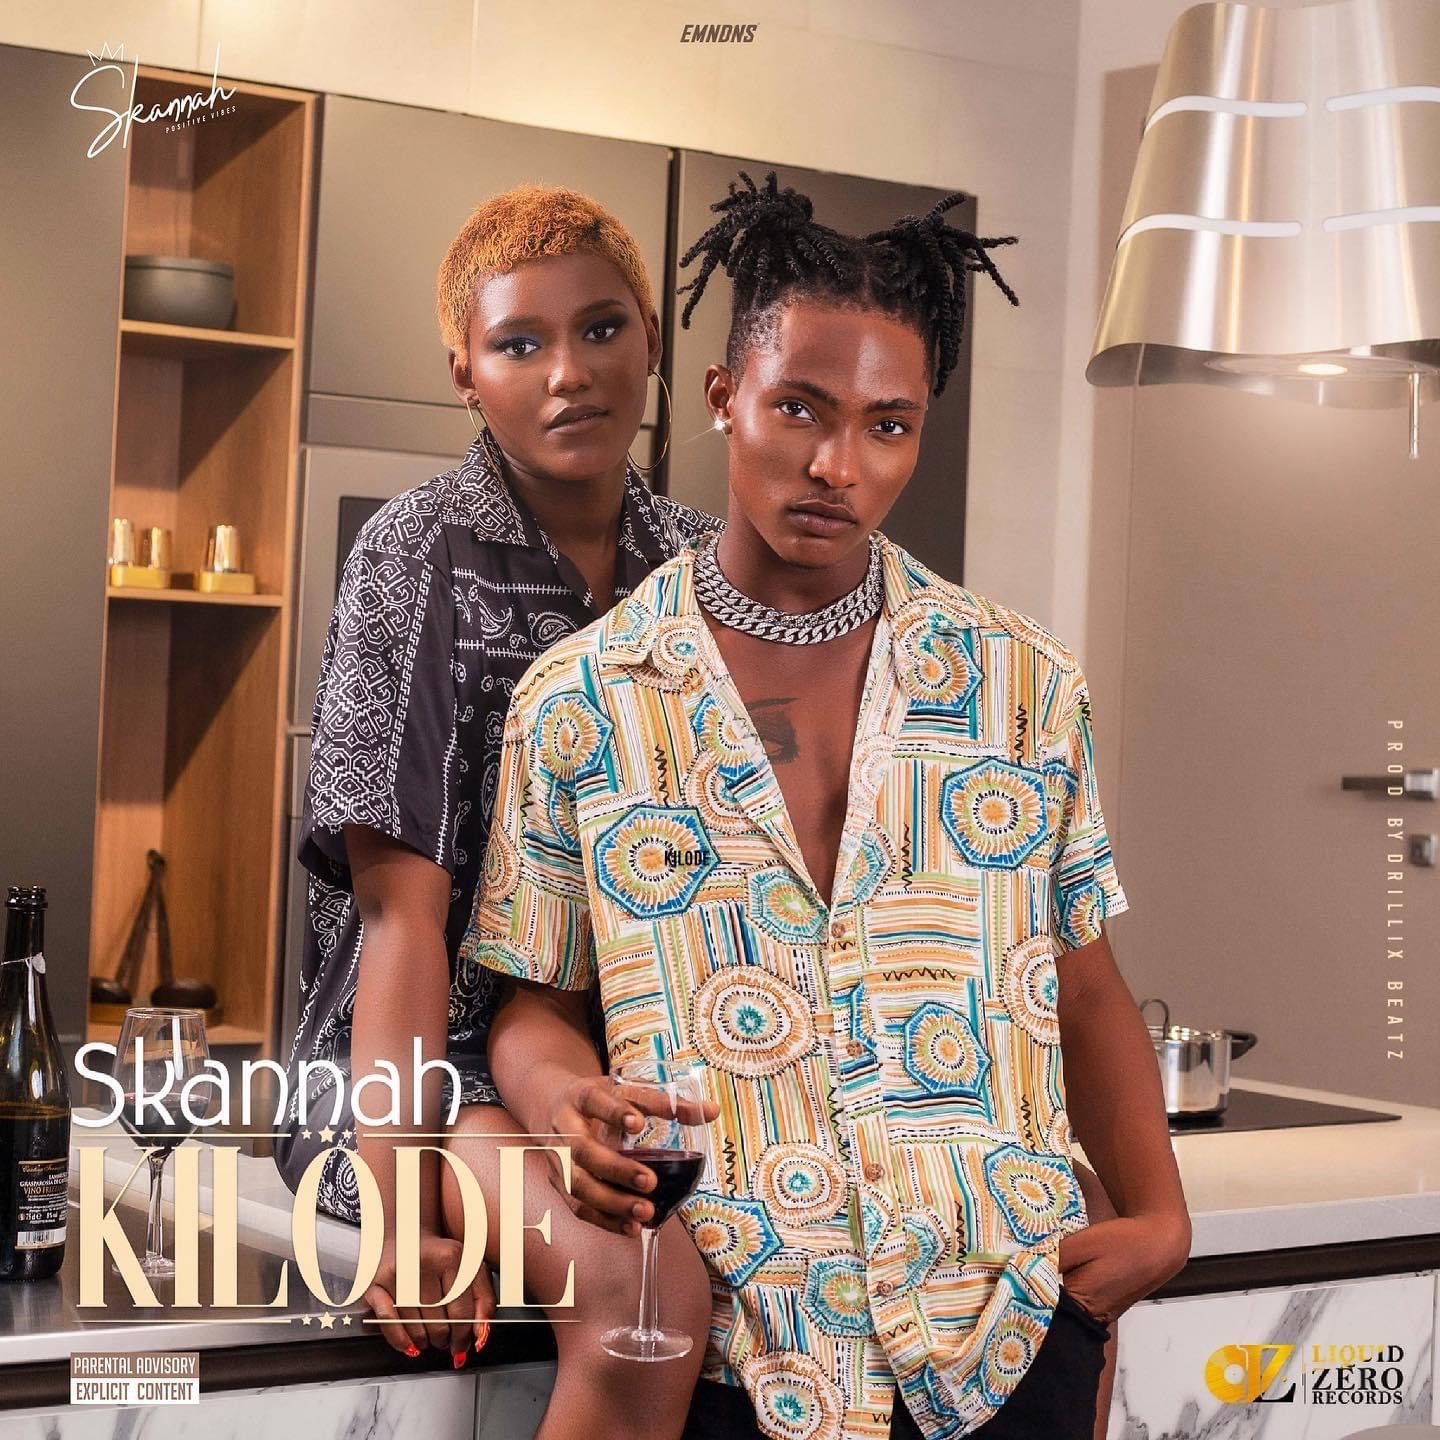 """, Skannahreadies new song """"KILODE"""" — drops on Friday, July 2nd, Frederick Nuetei"""